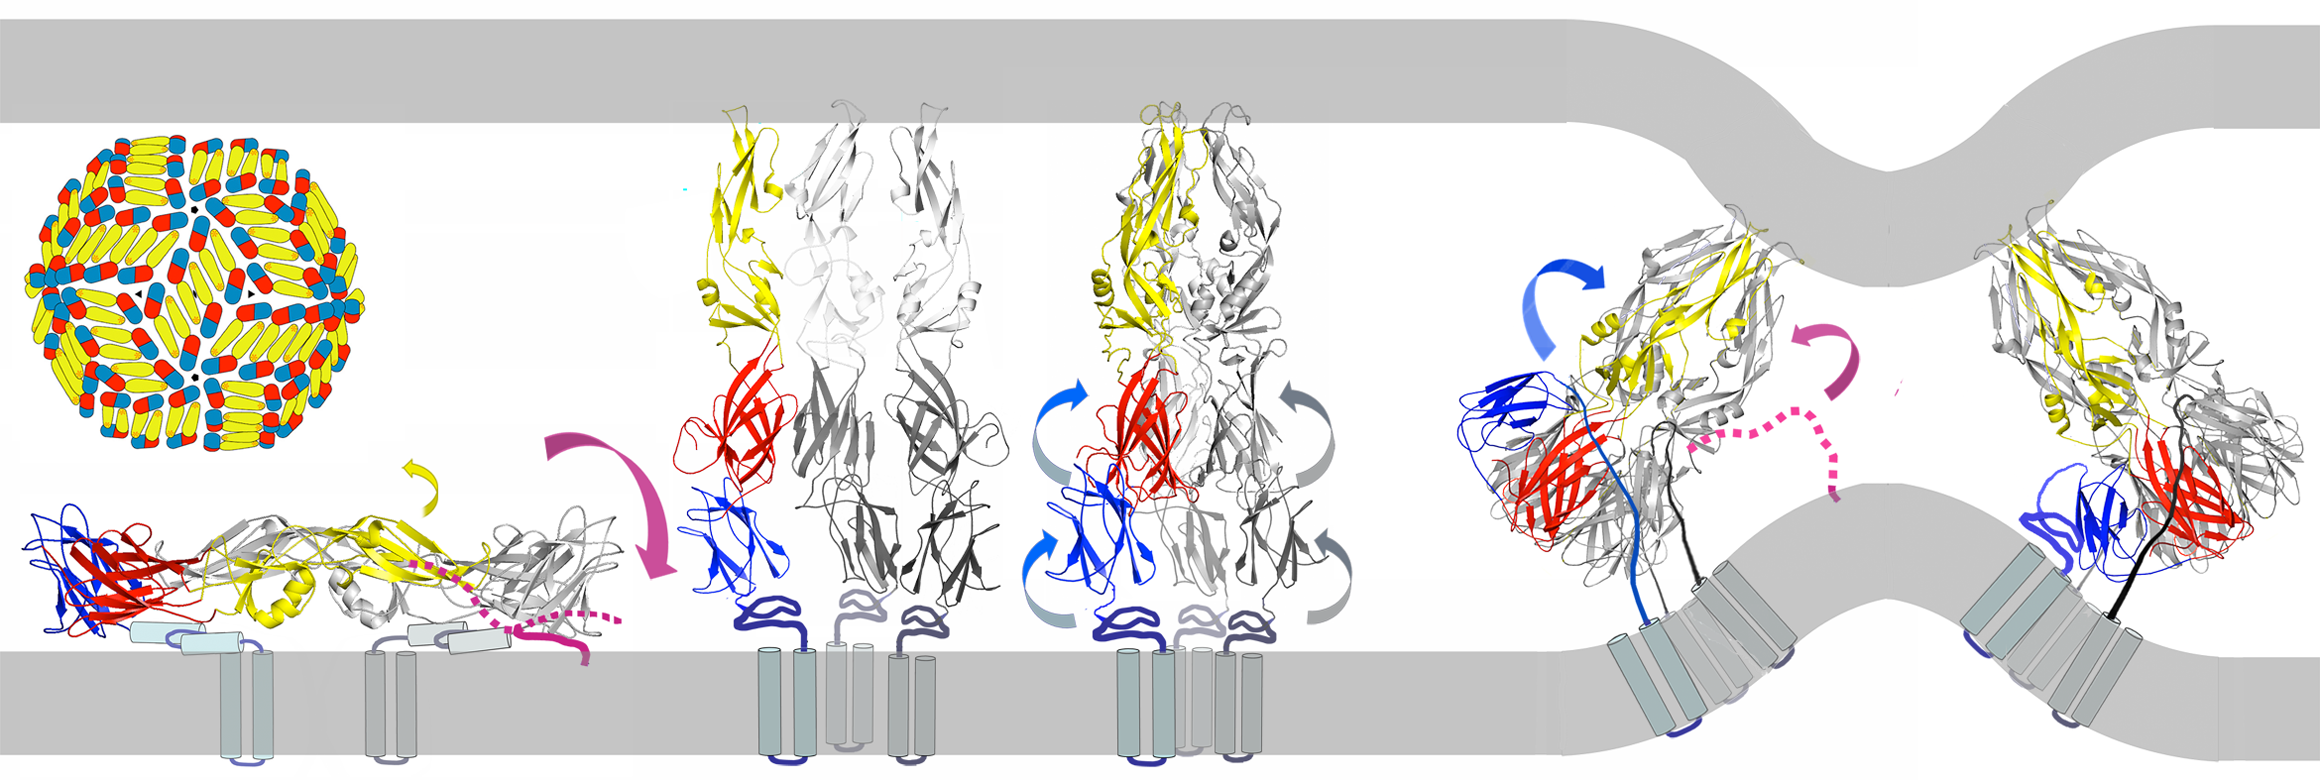 Model for inhibition of dengue-virus fusion by stem-derived peptides.